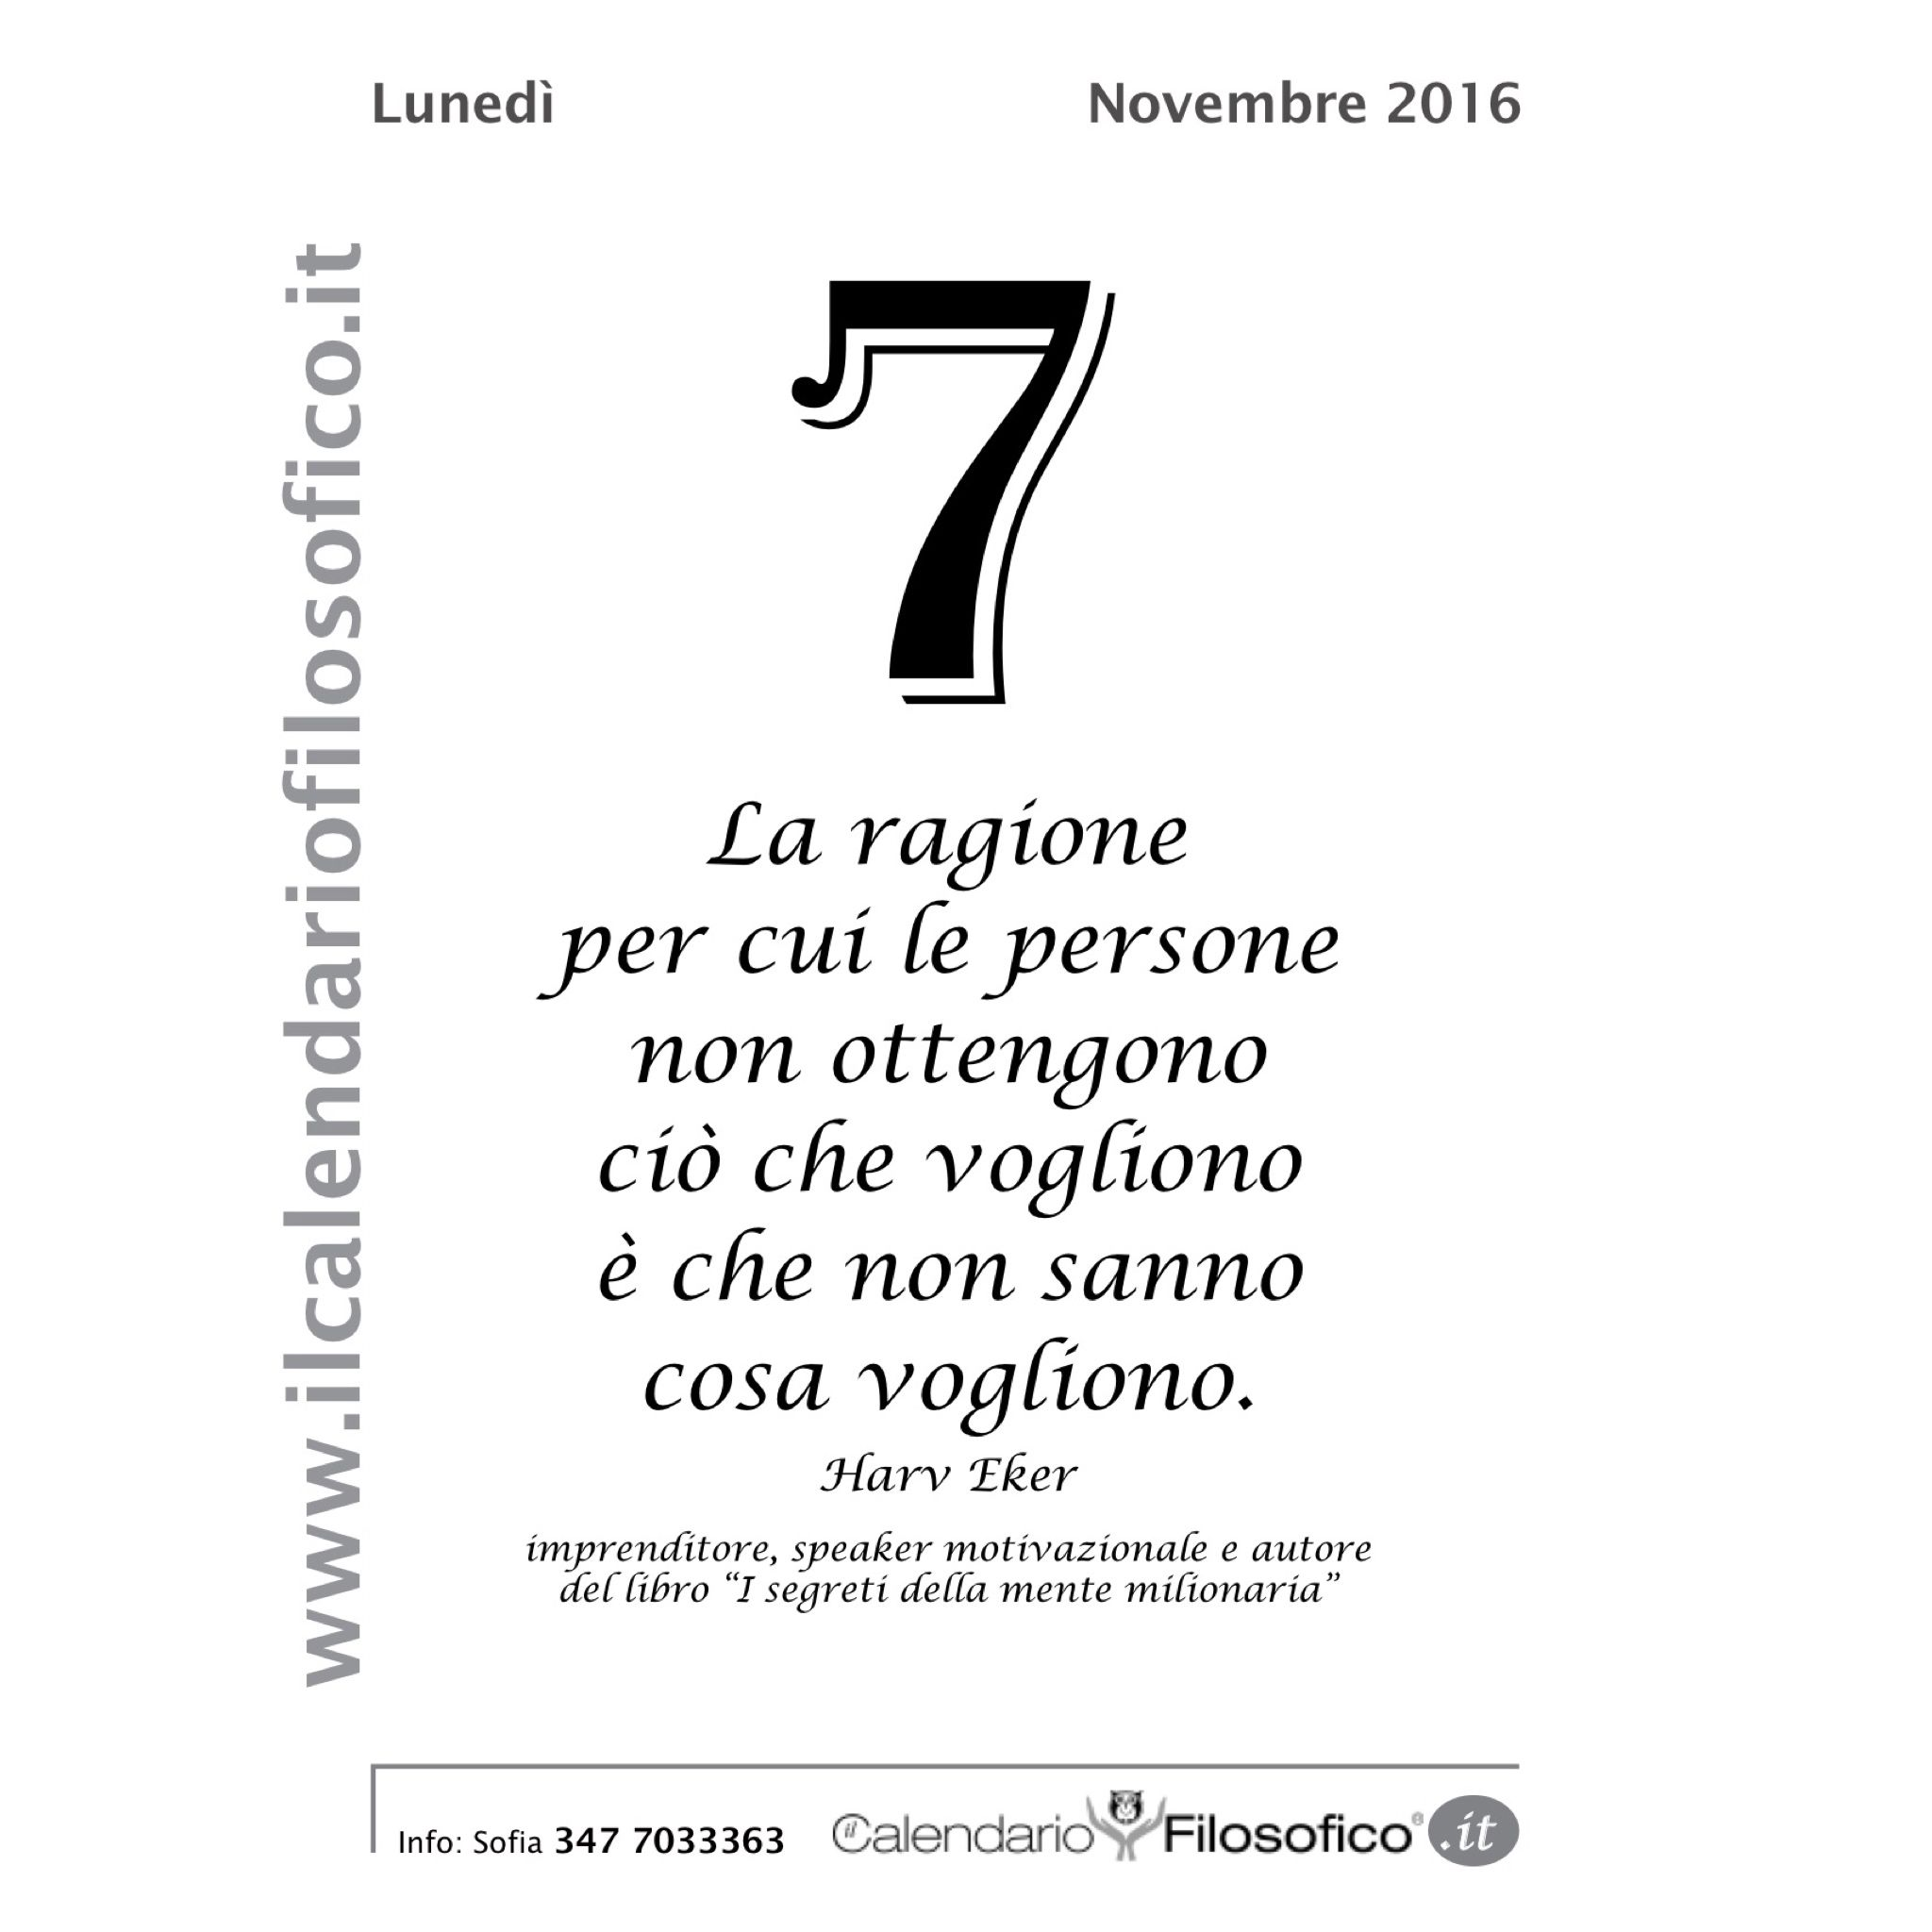 Top Il Calendario filosofico (Calendariofilos) on Pinterest PR44